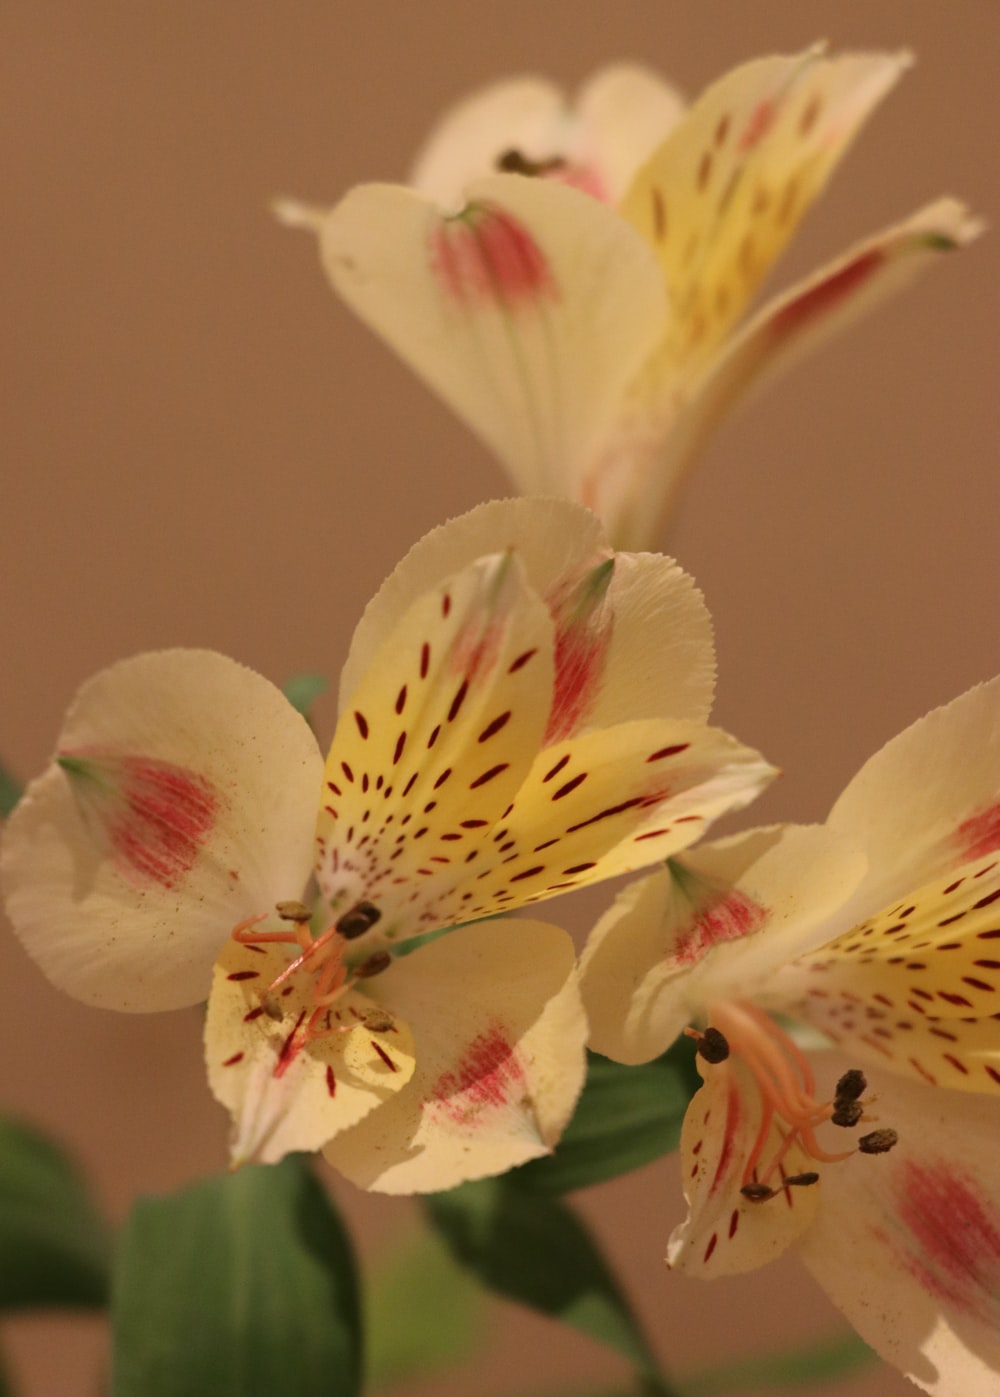 white and yellow flower in close up photography